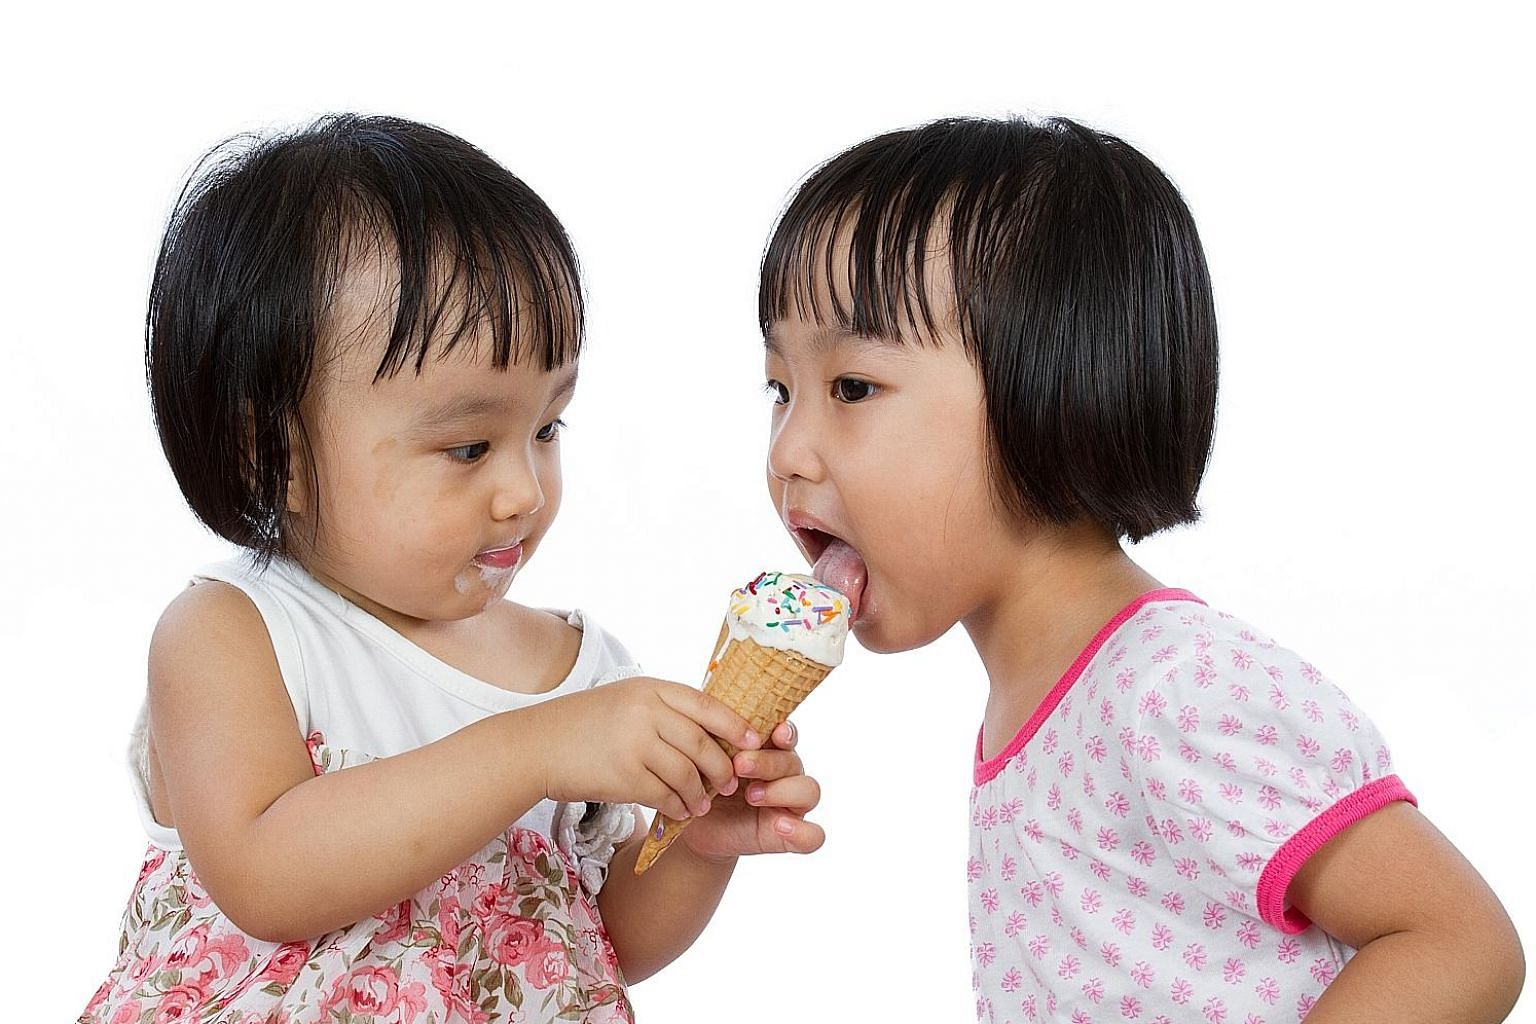 Junk food such as ice cream put one on a sugar high but they have little nutritional value and are linked to health problems.